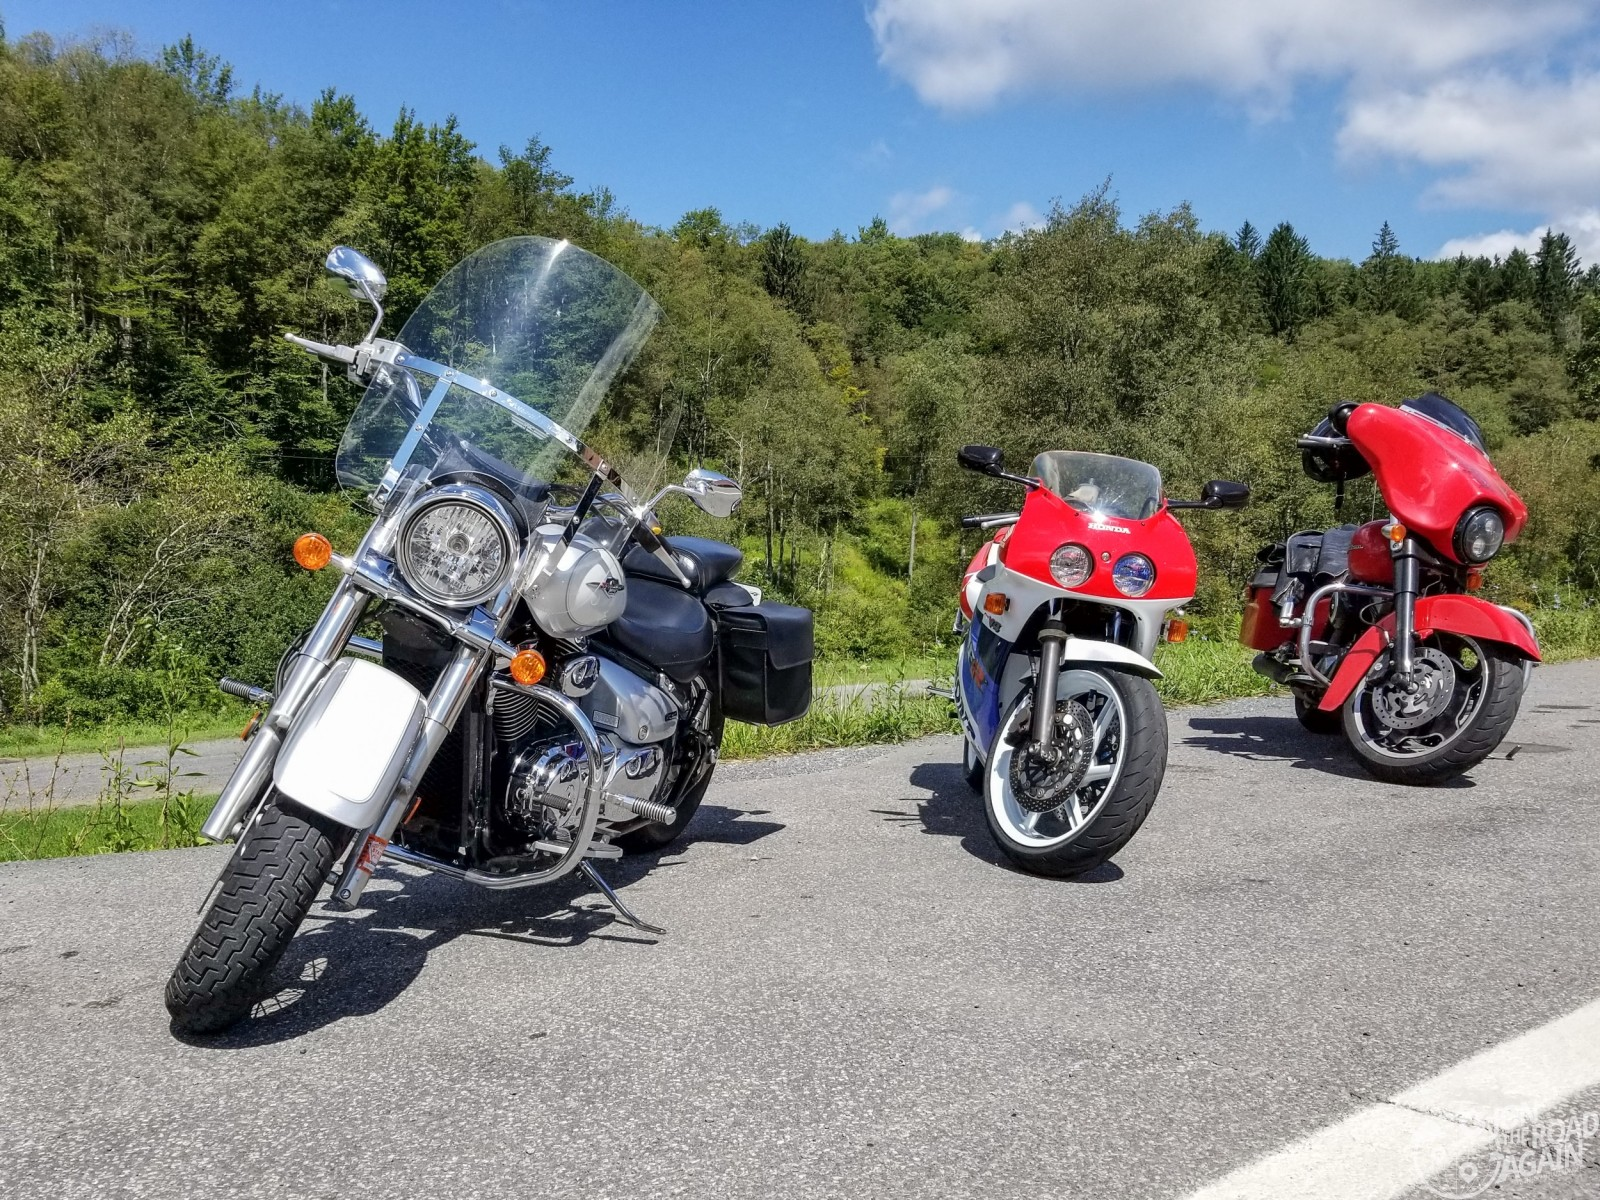 Riding motorcycles in West Virginia